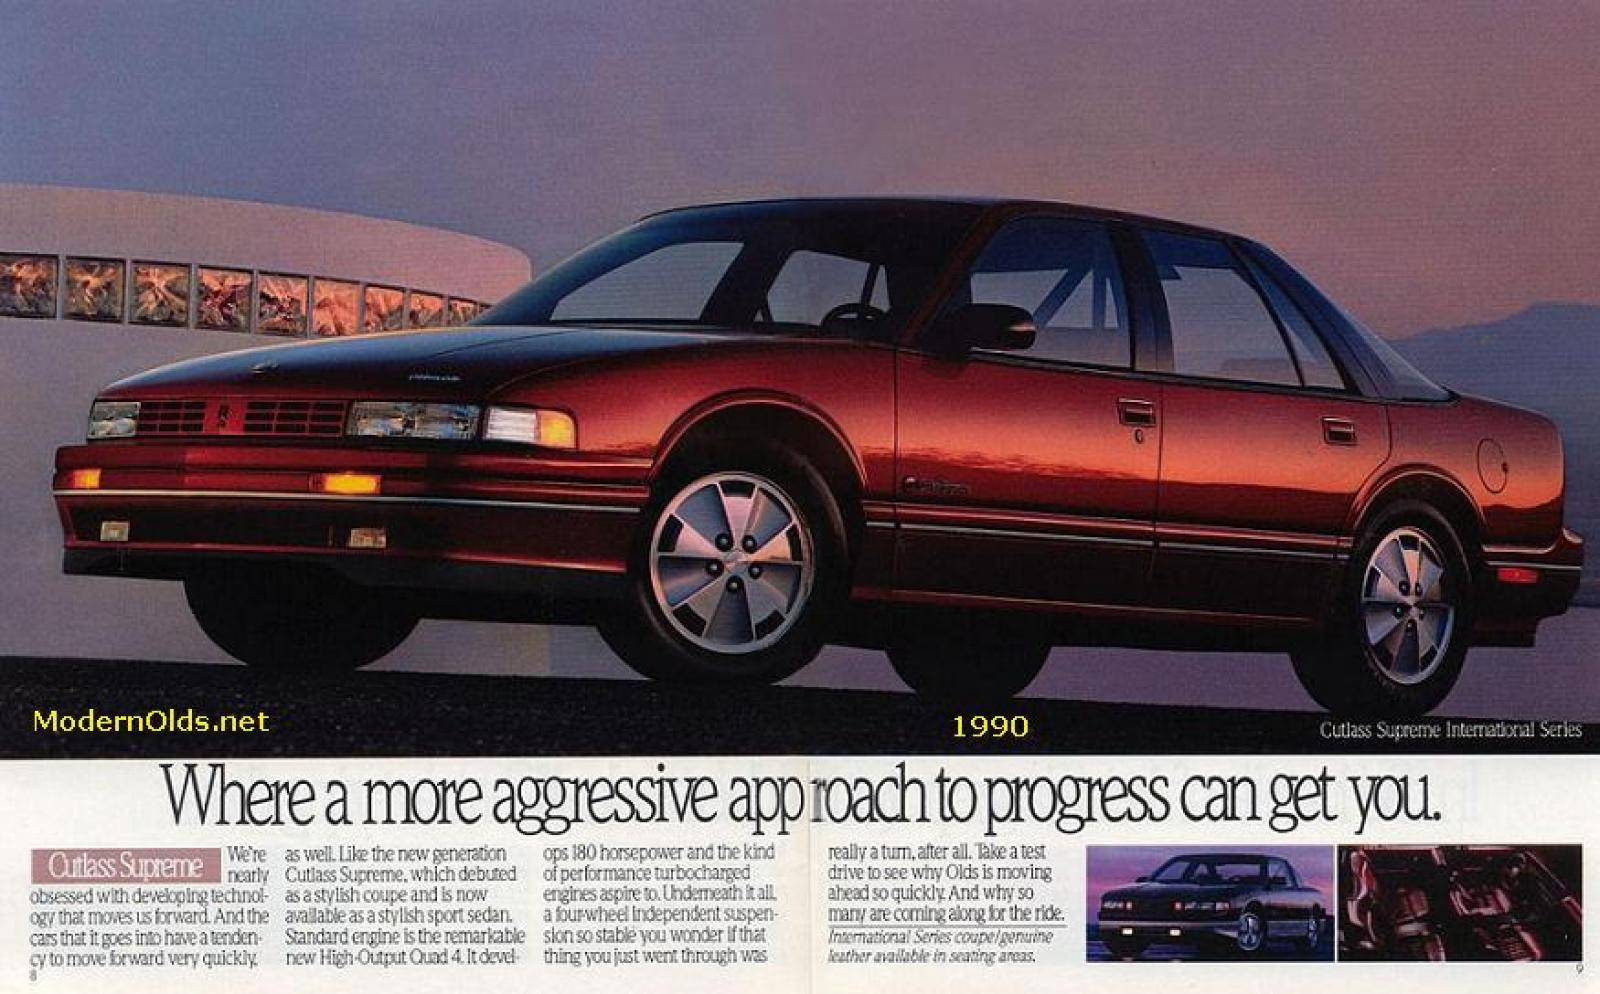 1997 oldsmobile cutlass supreme information and photos neo drive neo drive